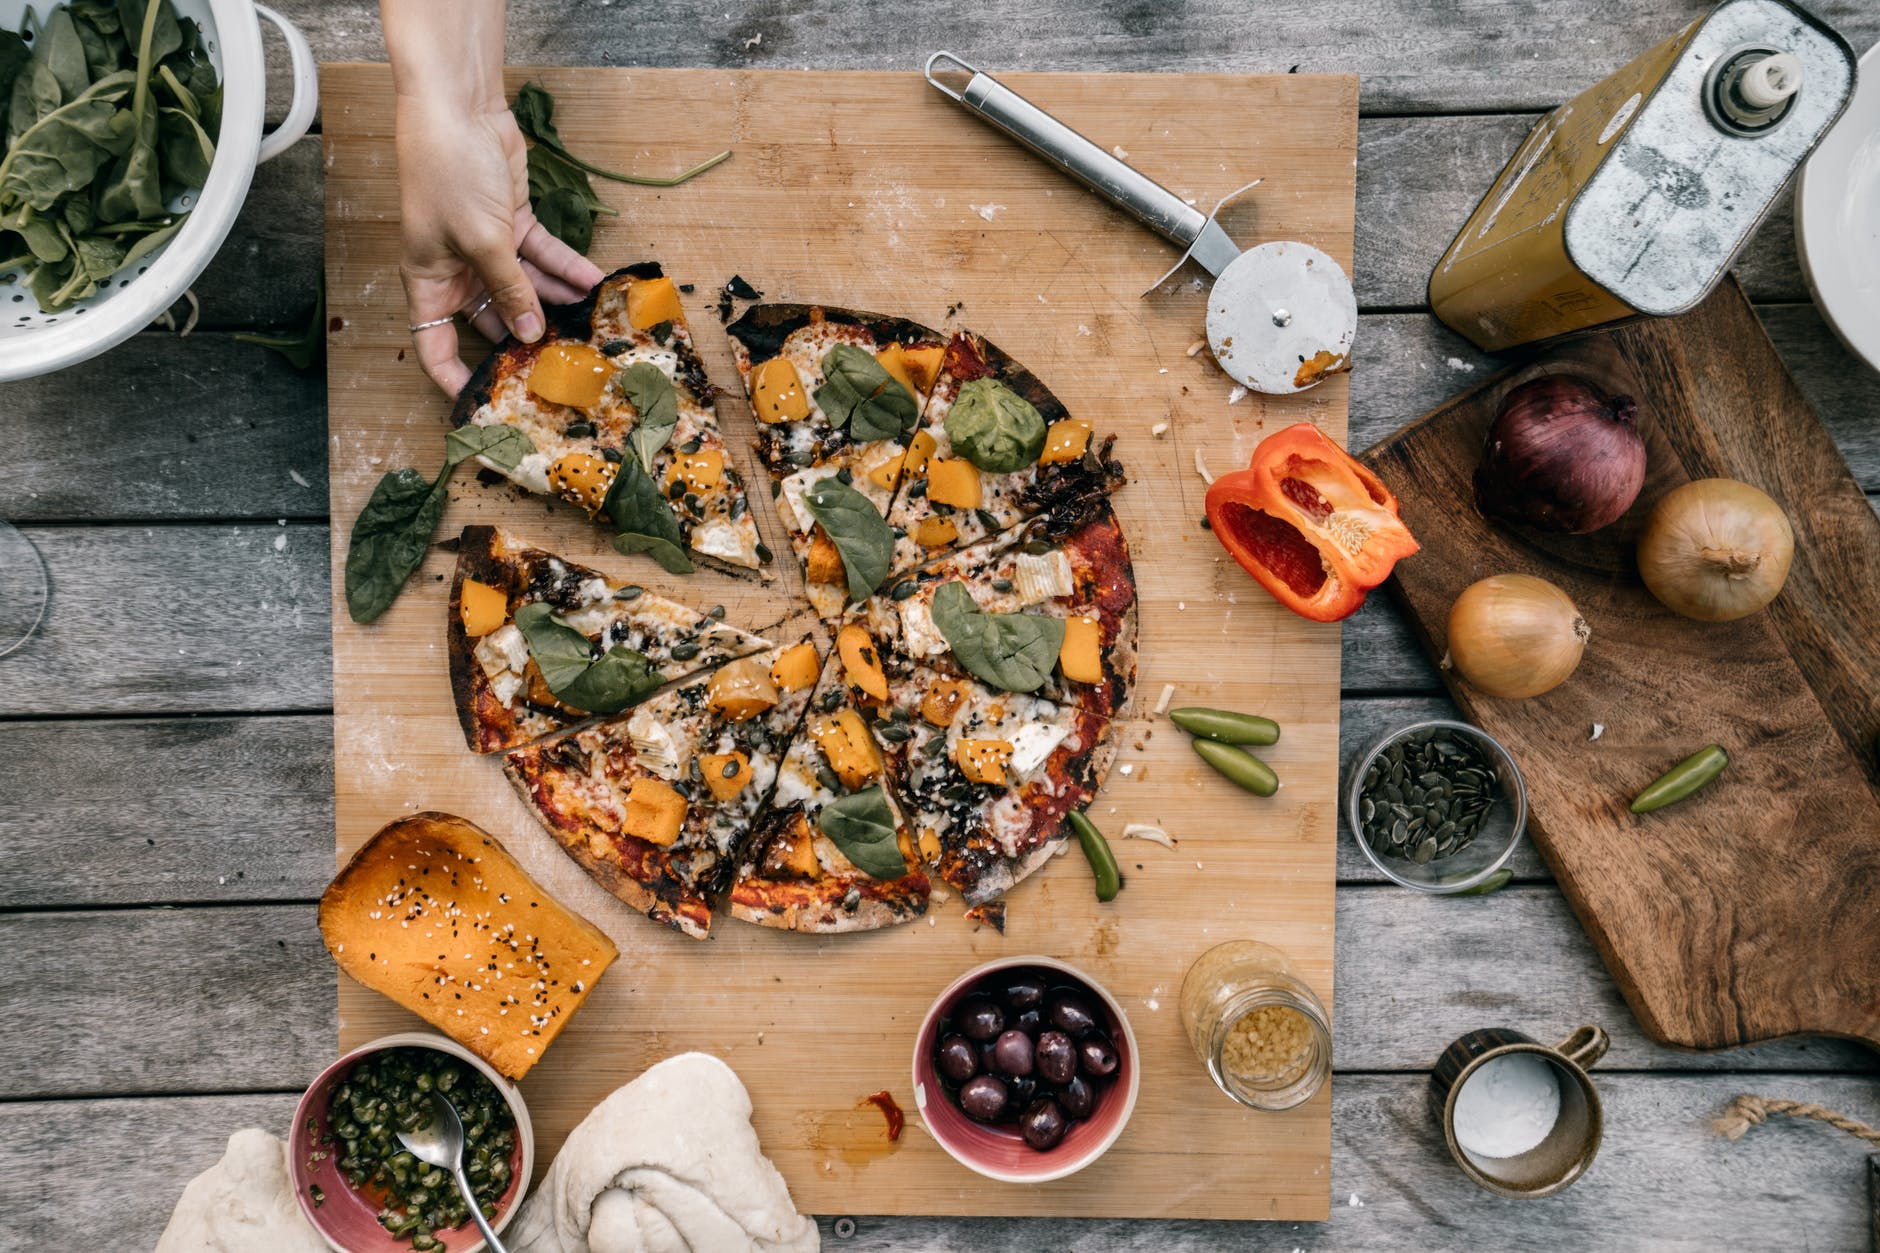 close up shot of vegetable pizza on a wooden surface